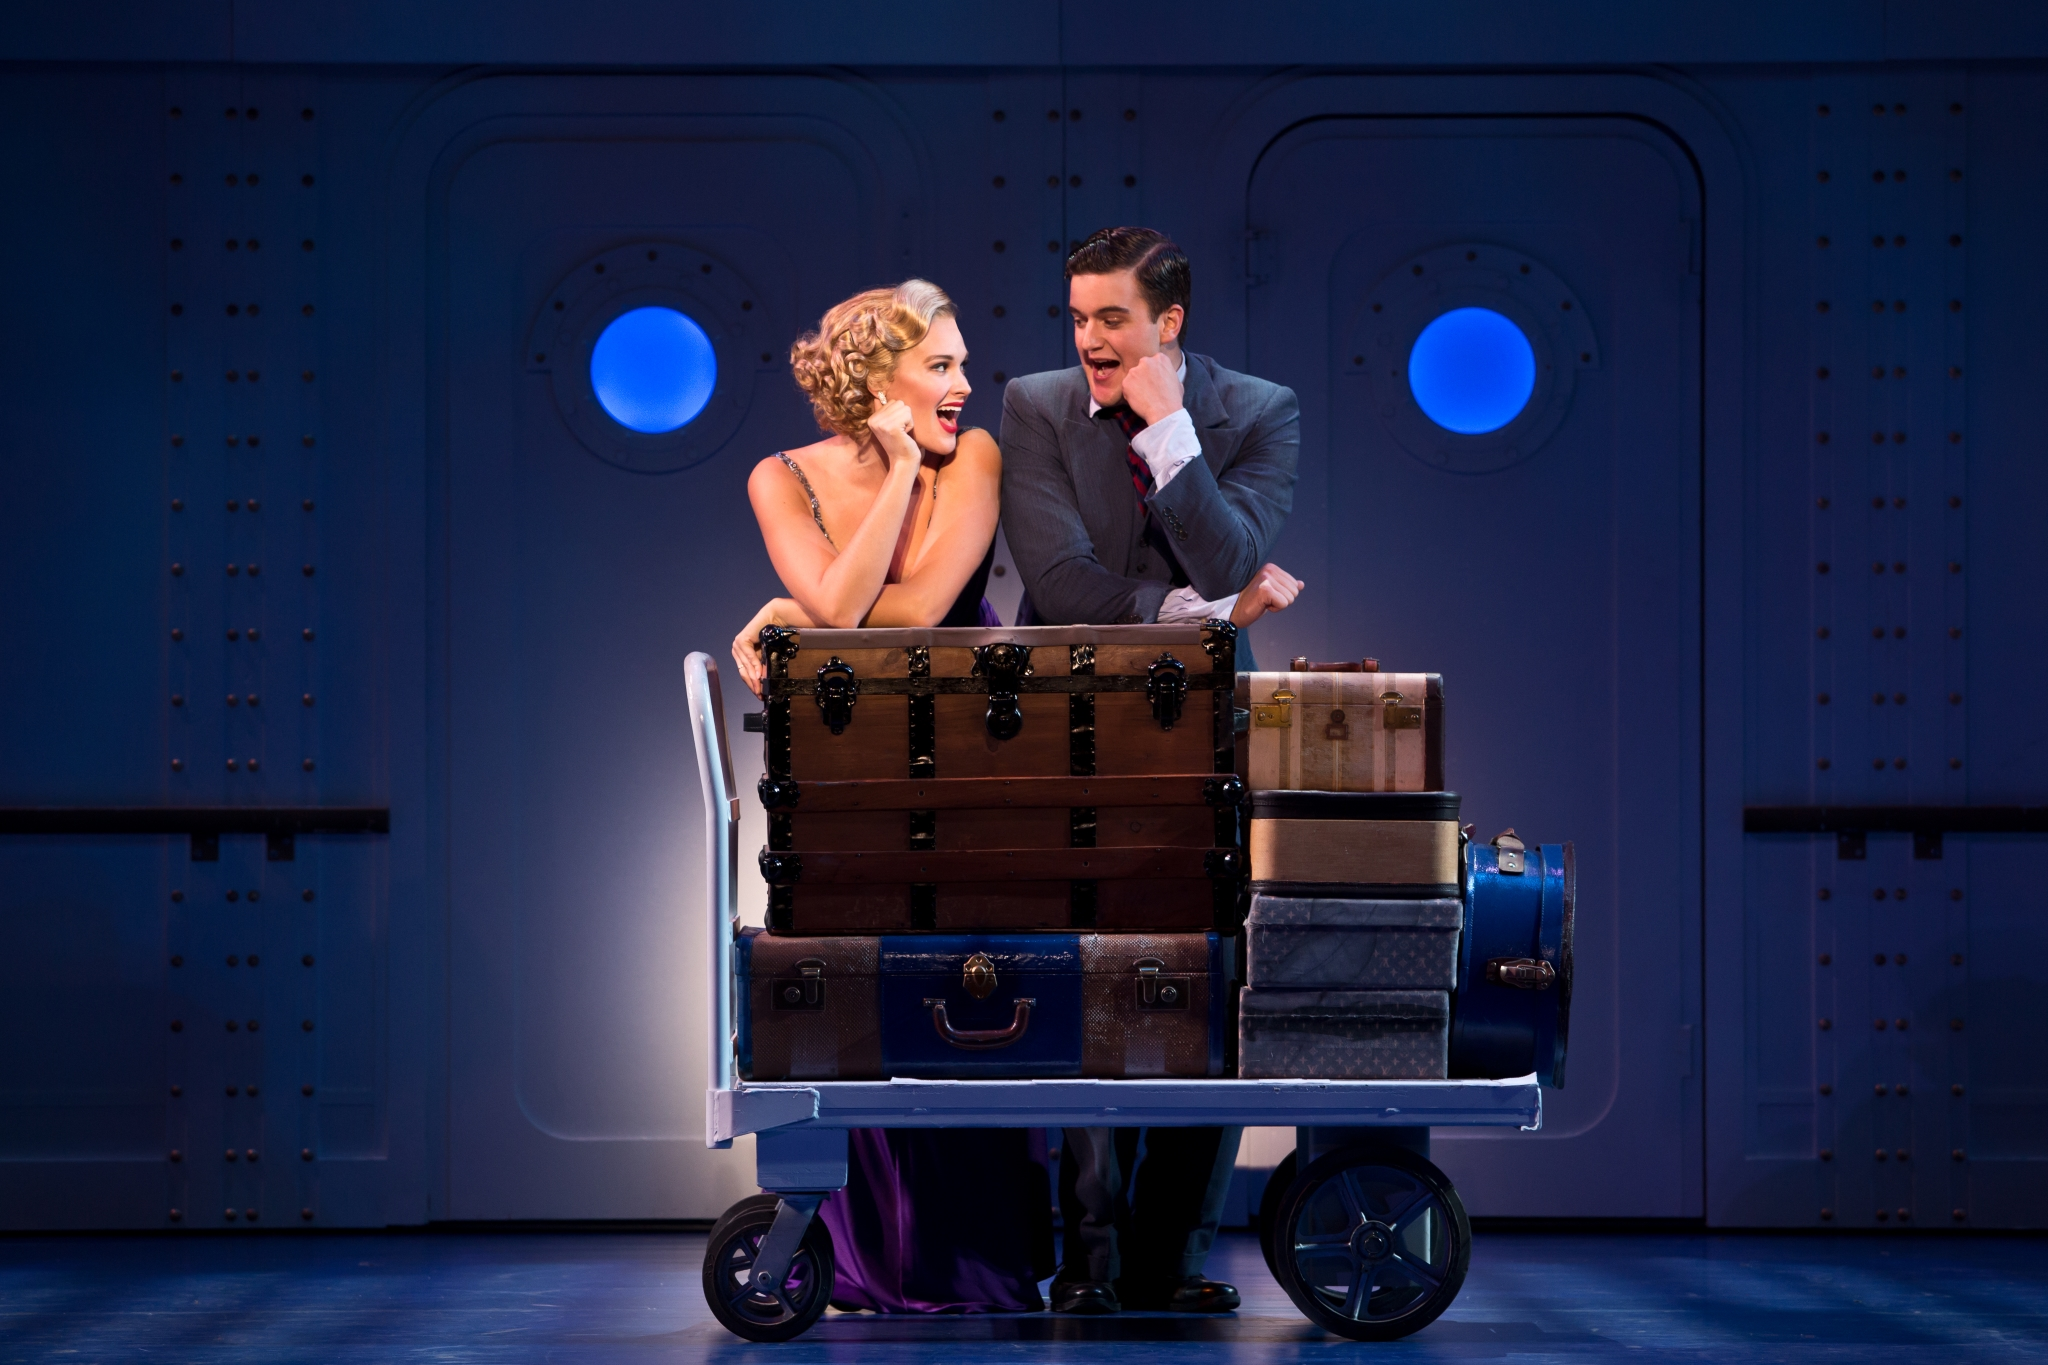 Emma Stratton as Reno Sweeney and Brian Krinsky as Billy Crocker in the National Tour of ANYTHING GOES. Photo Credit: Jeremy Daniel